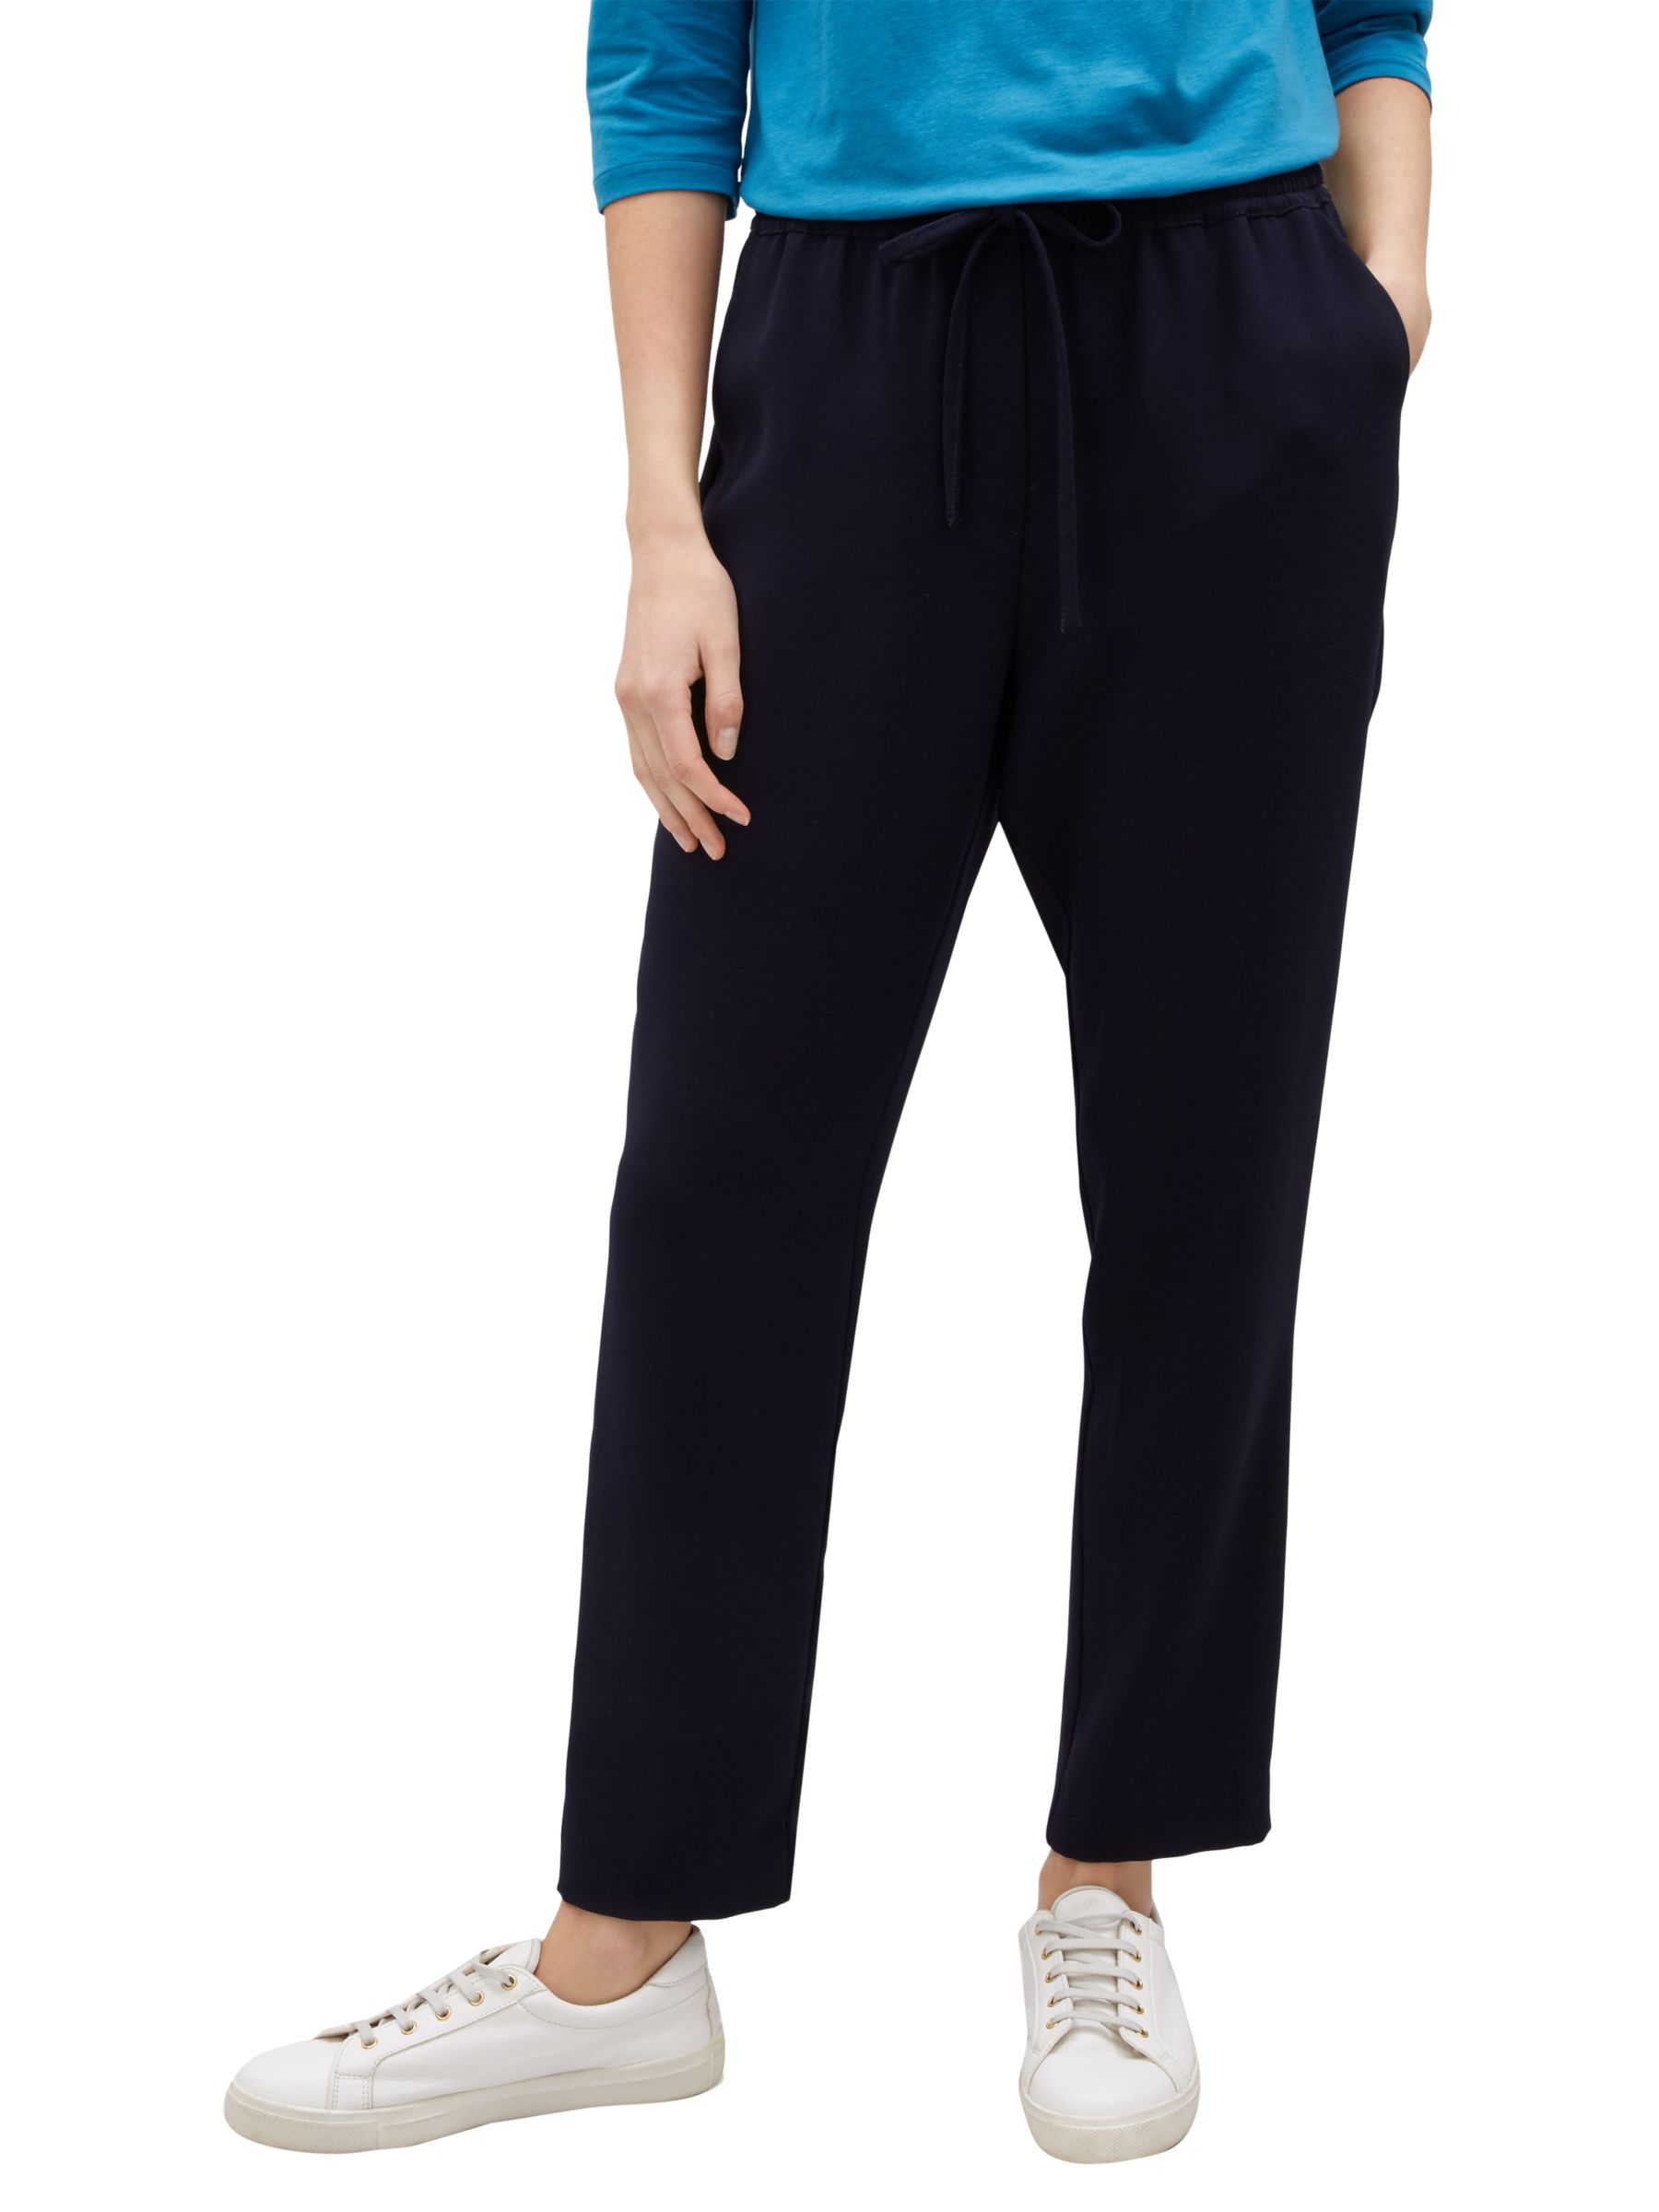 Jaeger Jaeger Elasticated Waist Trousers, Navy